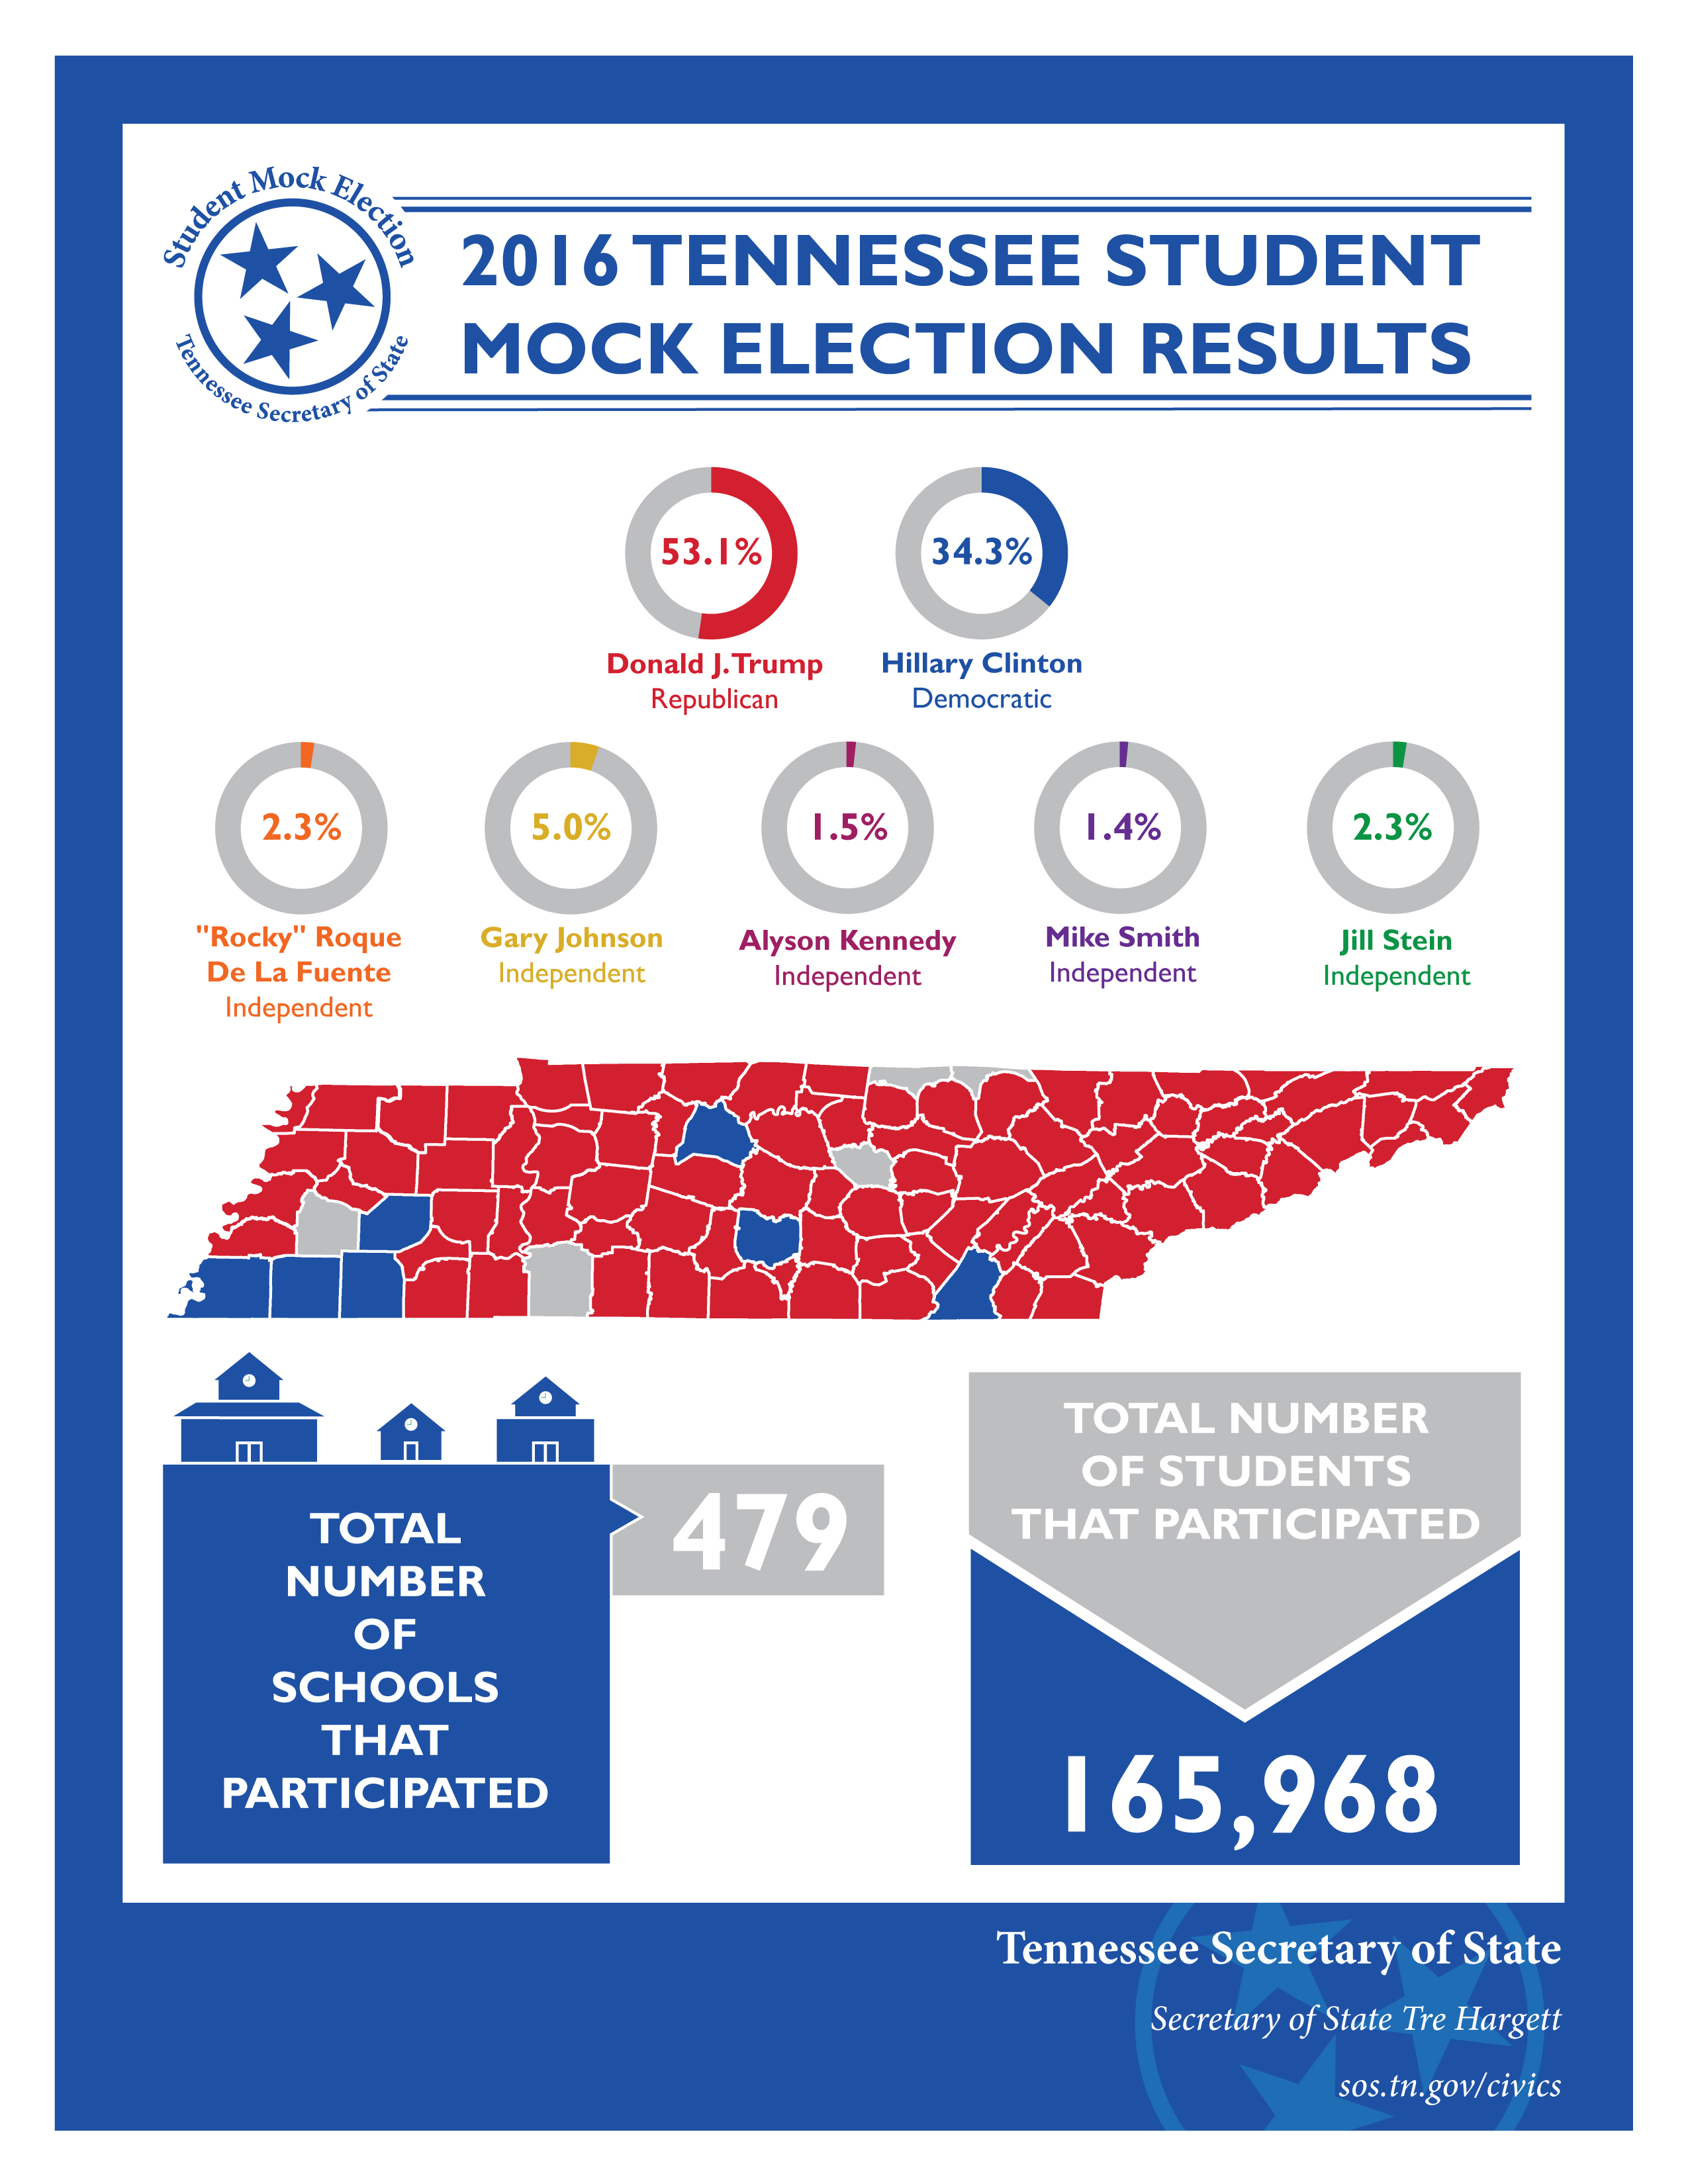 2016 Tennessee Mock Election